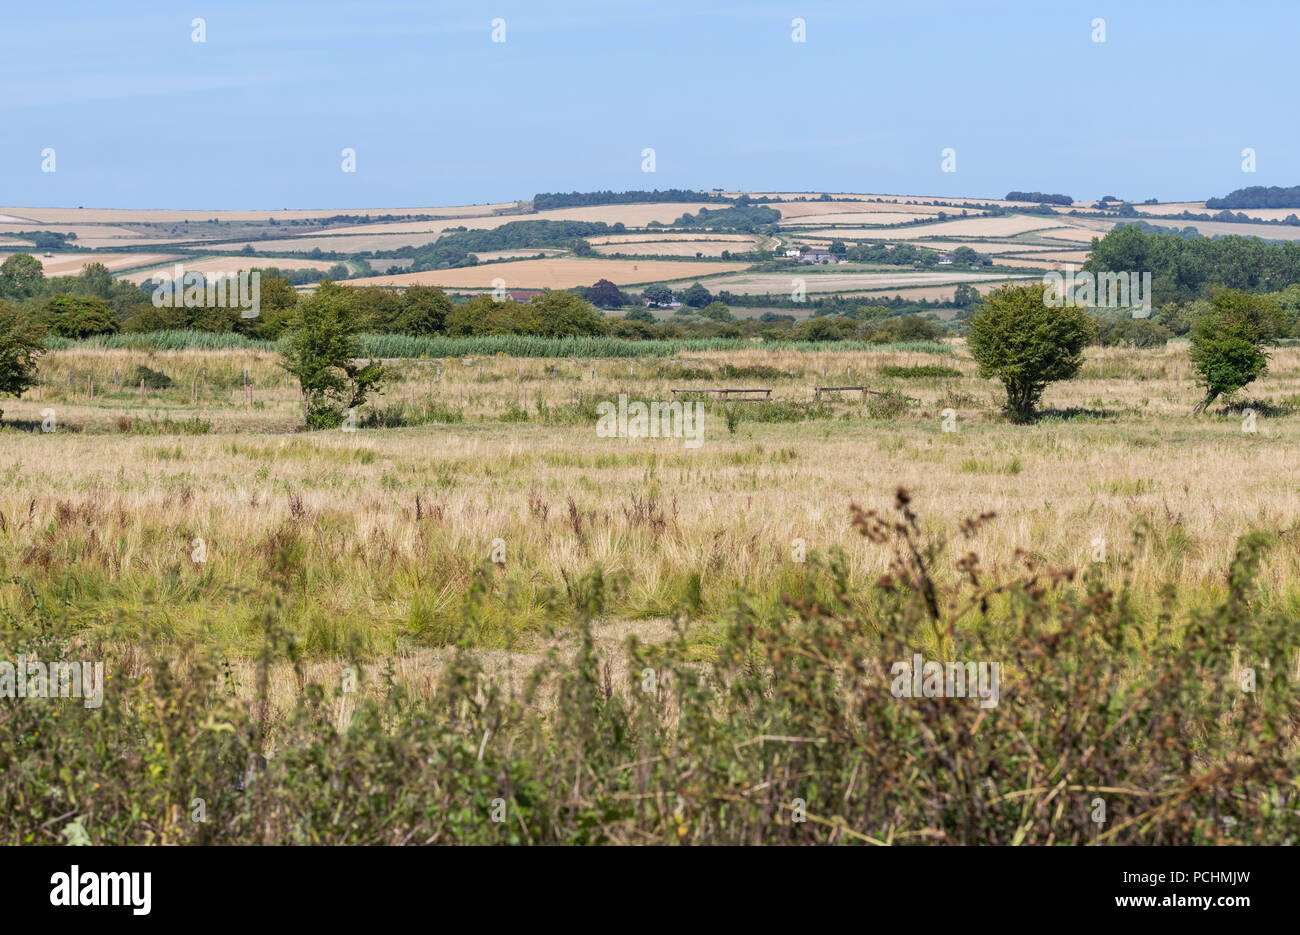 Hills & fields of the South Downs in the South of England in the July 2018 Summer heatwave, showing brown grass due to lack of rain in West Sussex, UK. - Stock Image